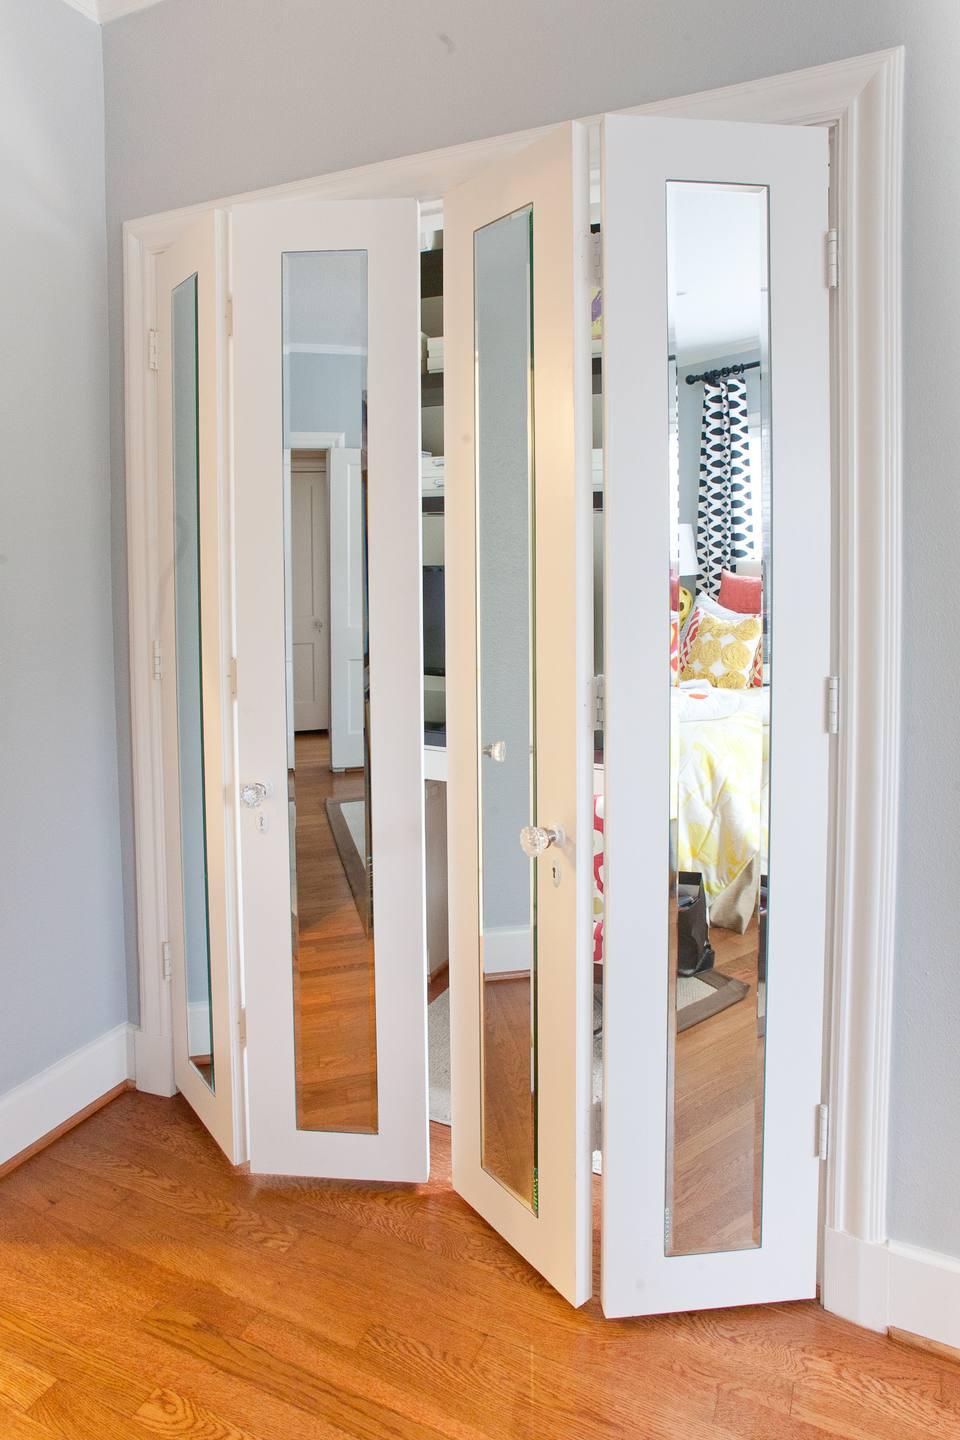 pin doors slim adding them out ideas flat to a mirrors molding trimming great way and vibe door closet bring with is full contemporary length